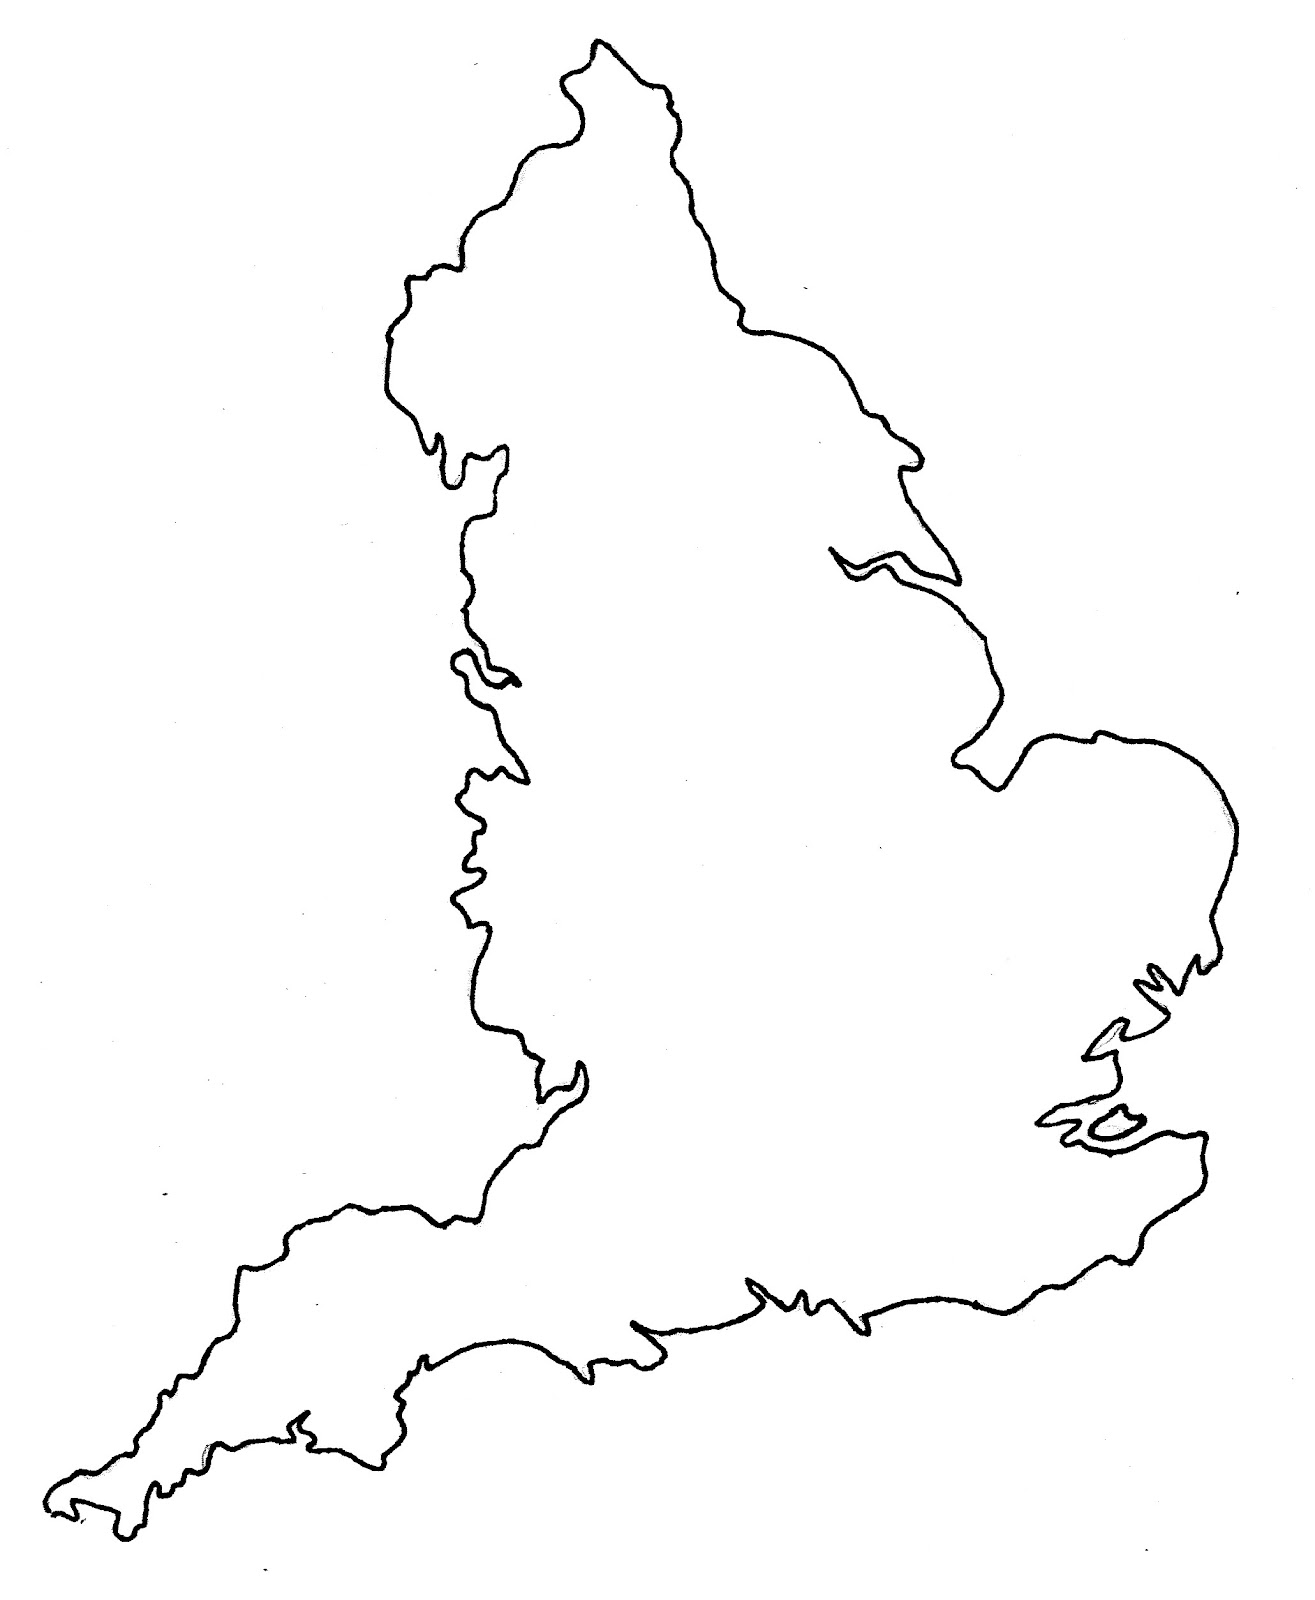 Simple map drawing at getdrawings free for personal use simple 1315x1600 special blank map of england top ideas gumiabroncs Choice Image